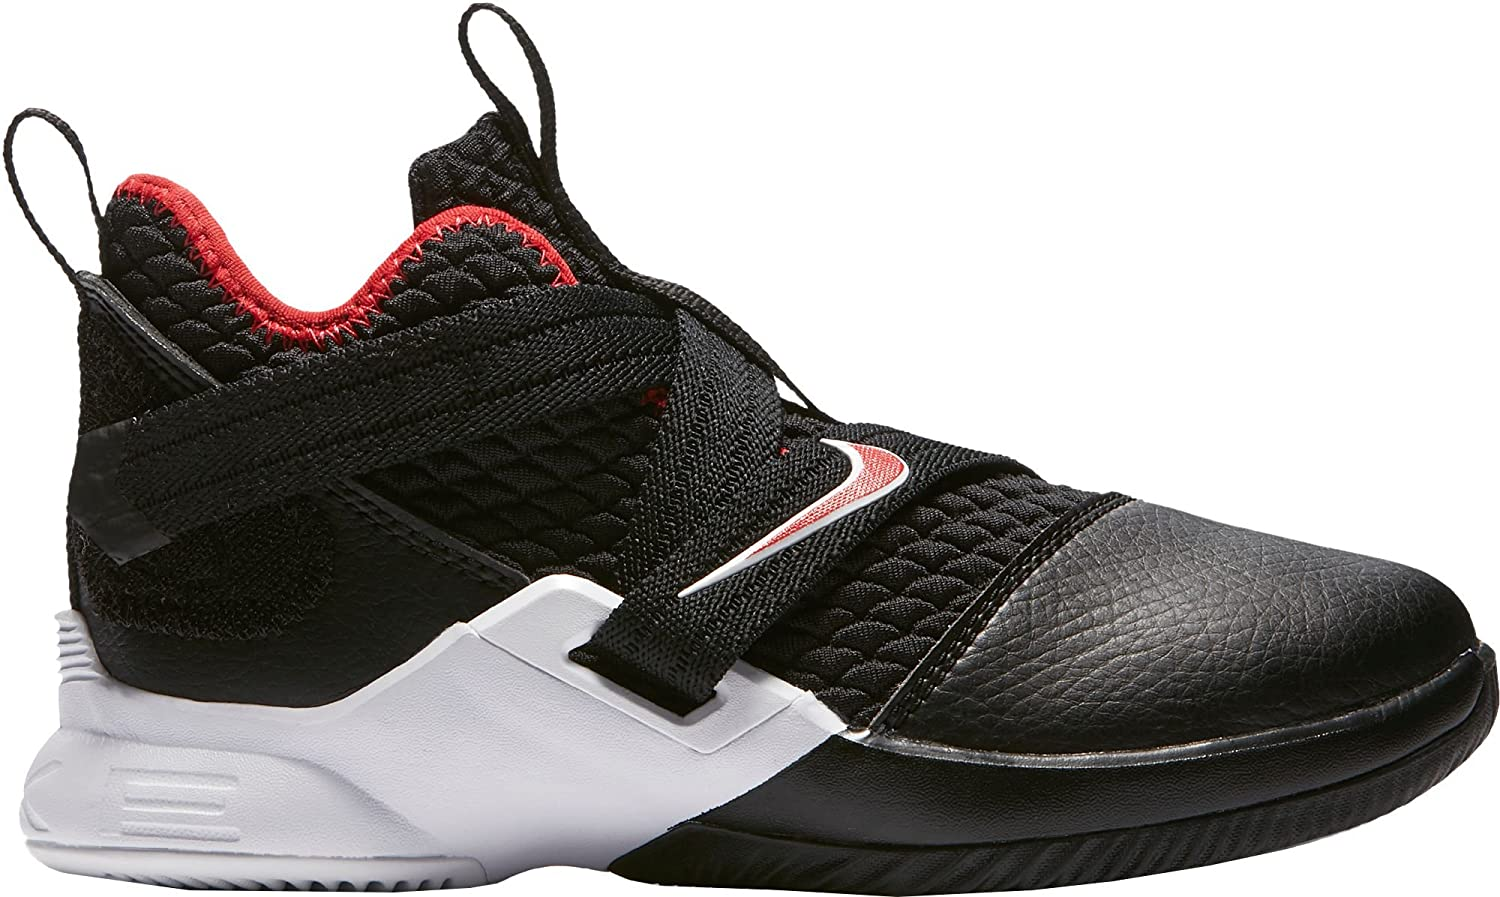 49a175658a8186 Amazon.com  Nike Kid s Preschool Lebron Soldier XII Basketball Shoes   Sports   Outdoors